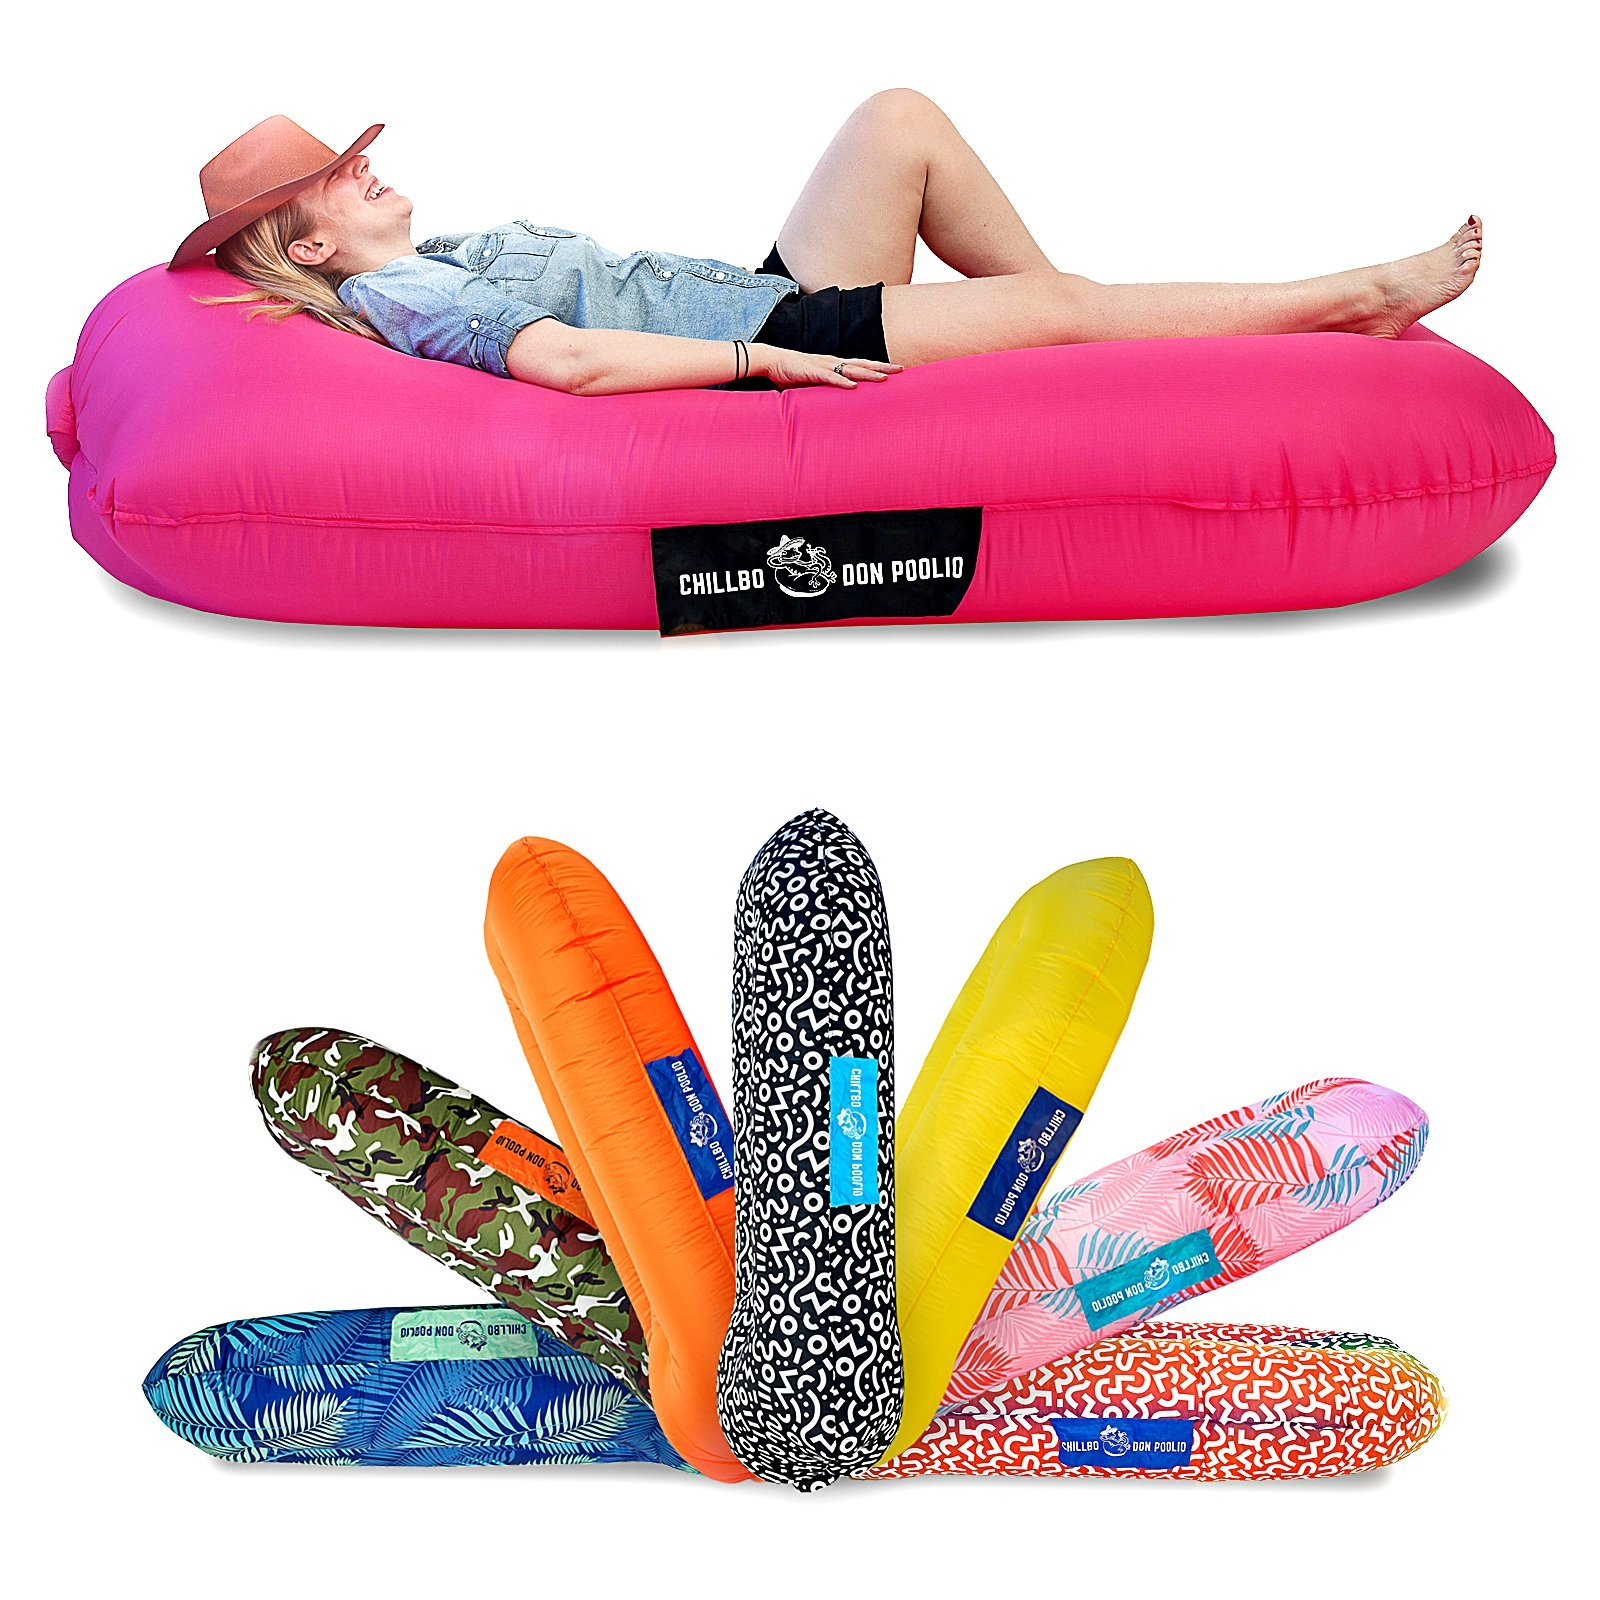 Chillbo Don POOLIO Pool Floats for Adults - Cool Patterns, Inflatable Sofa & Kids Hammock - Best Camping Gear for River Floats Hammock Chair & Raft for Beach (Pink + Black) by Chillbo